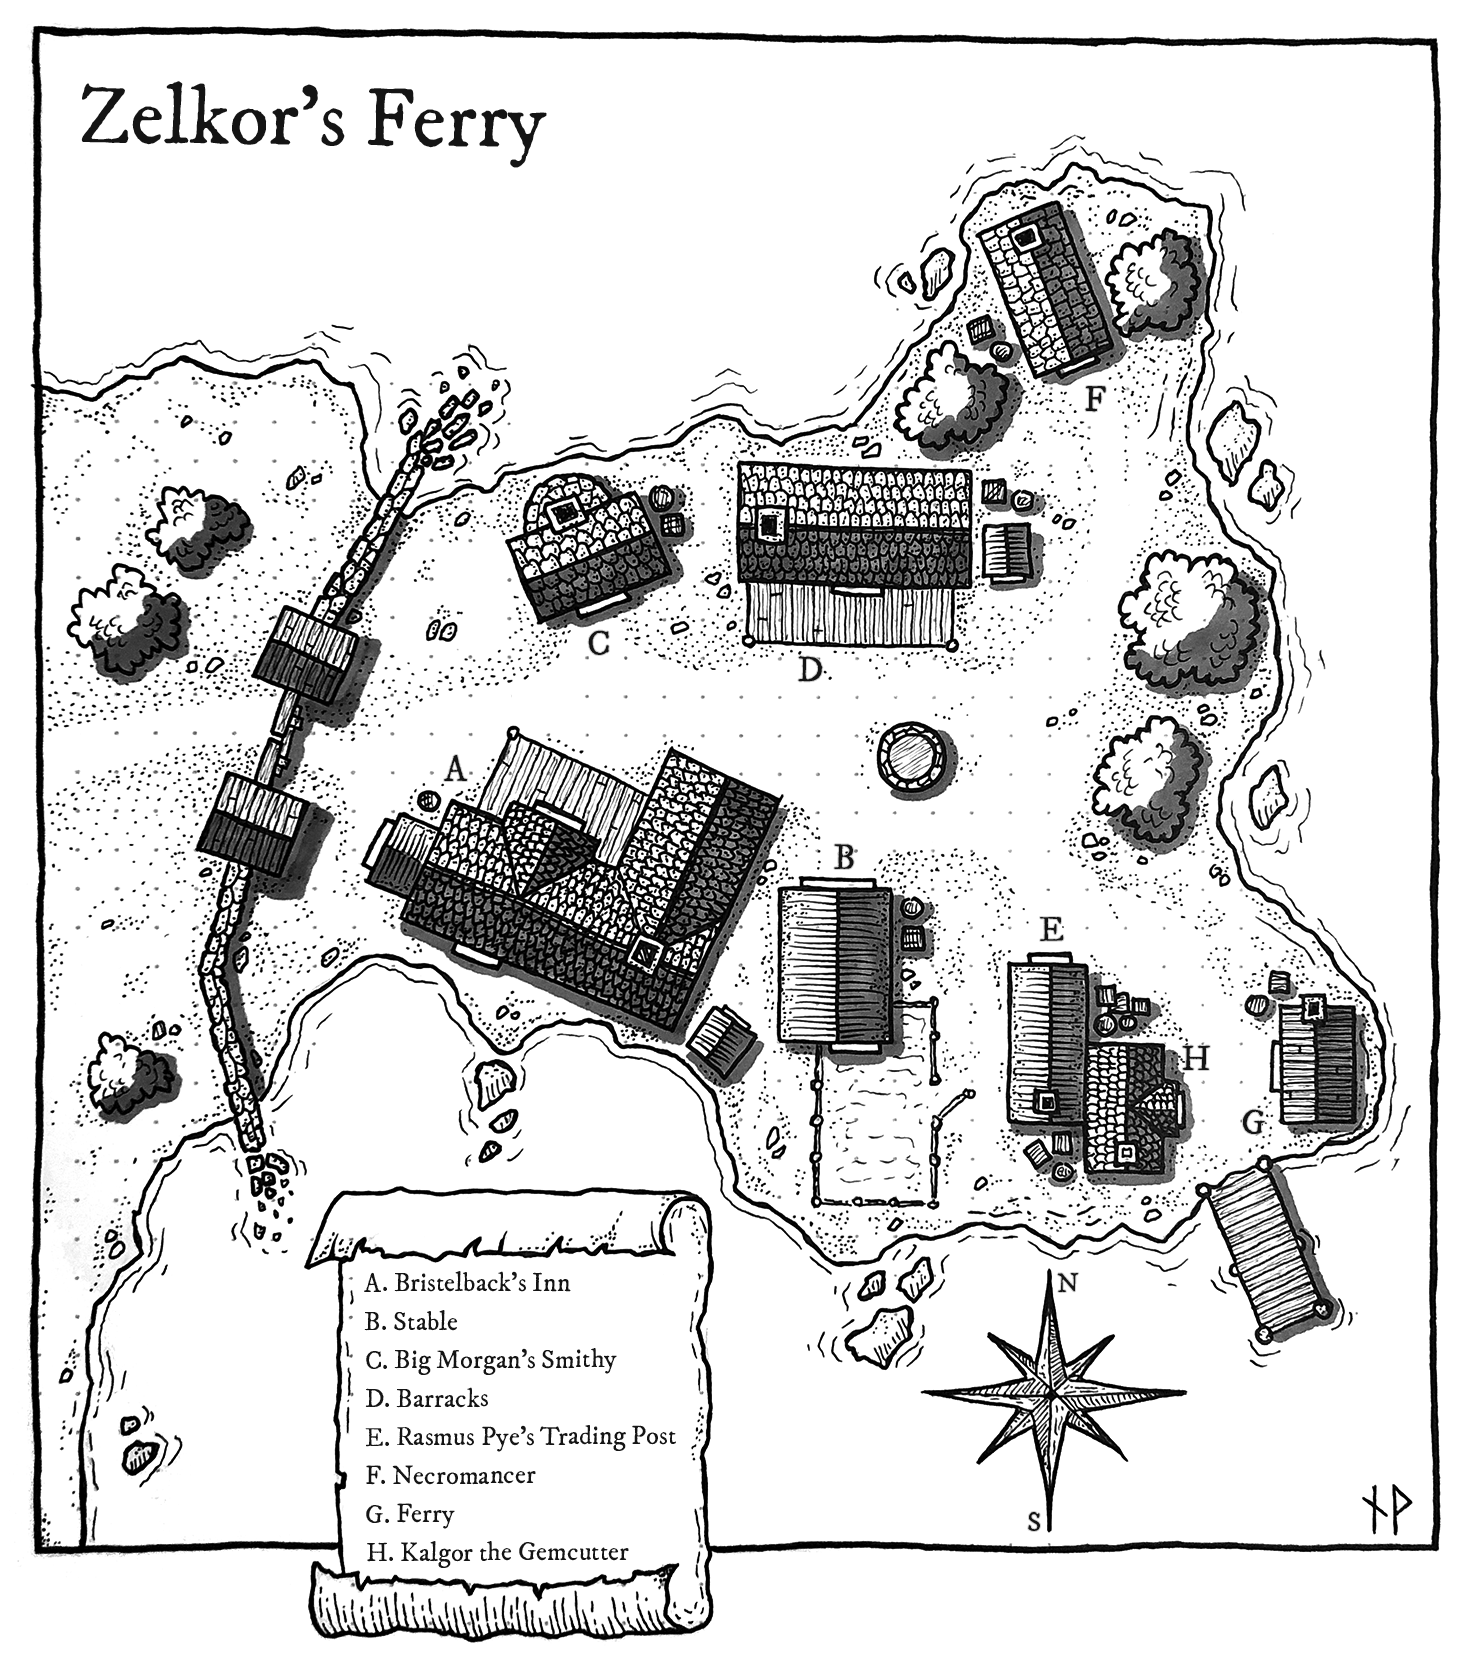 Map of Zelkor's Ferry